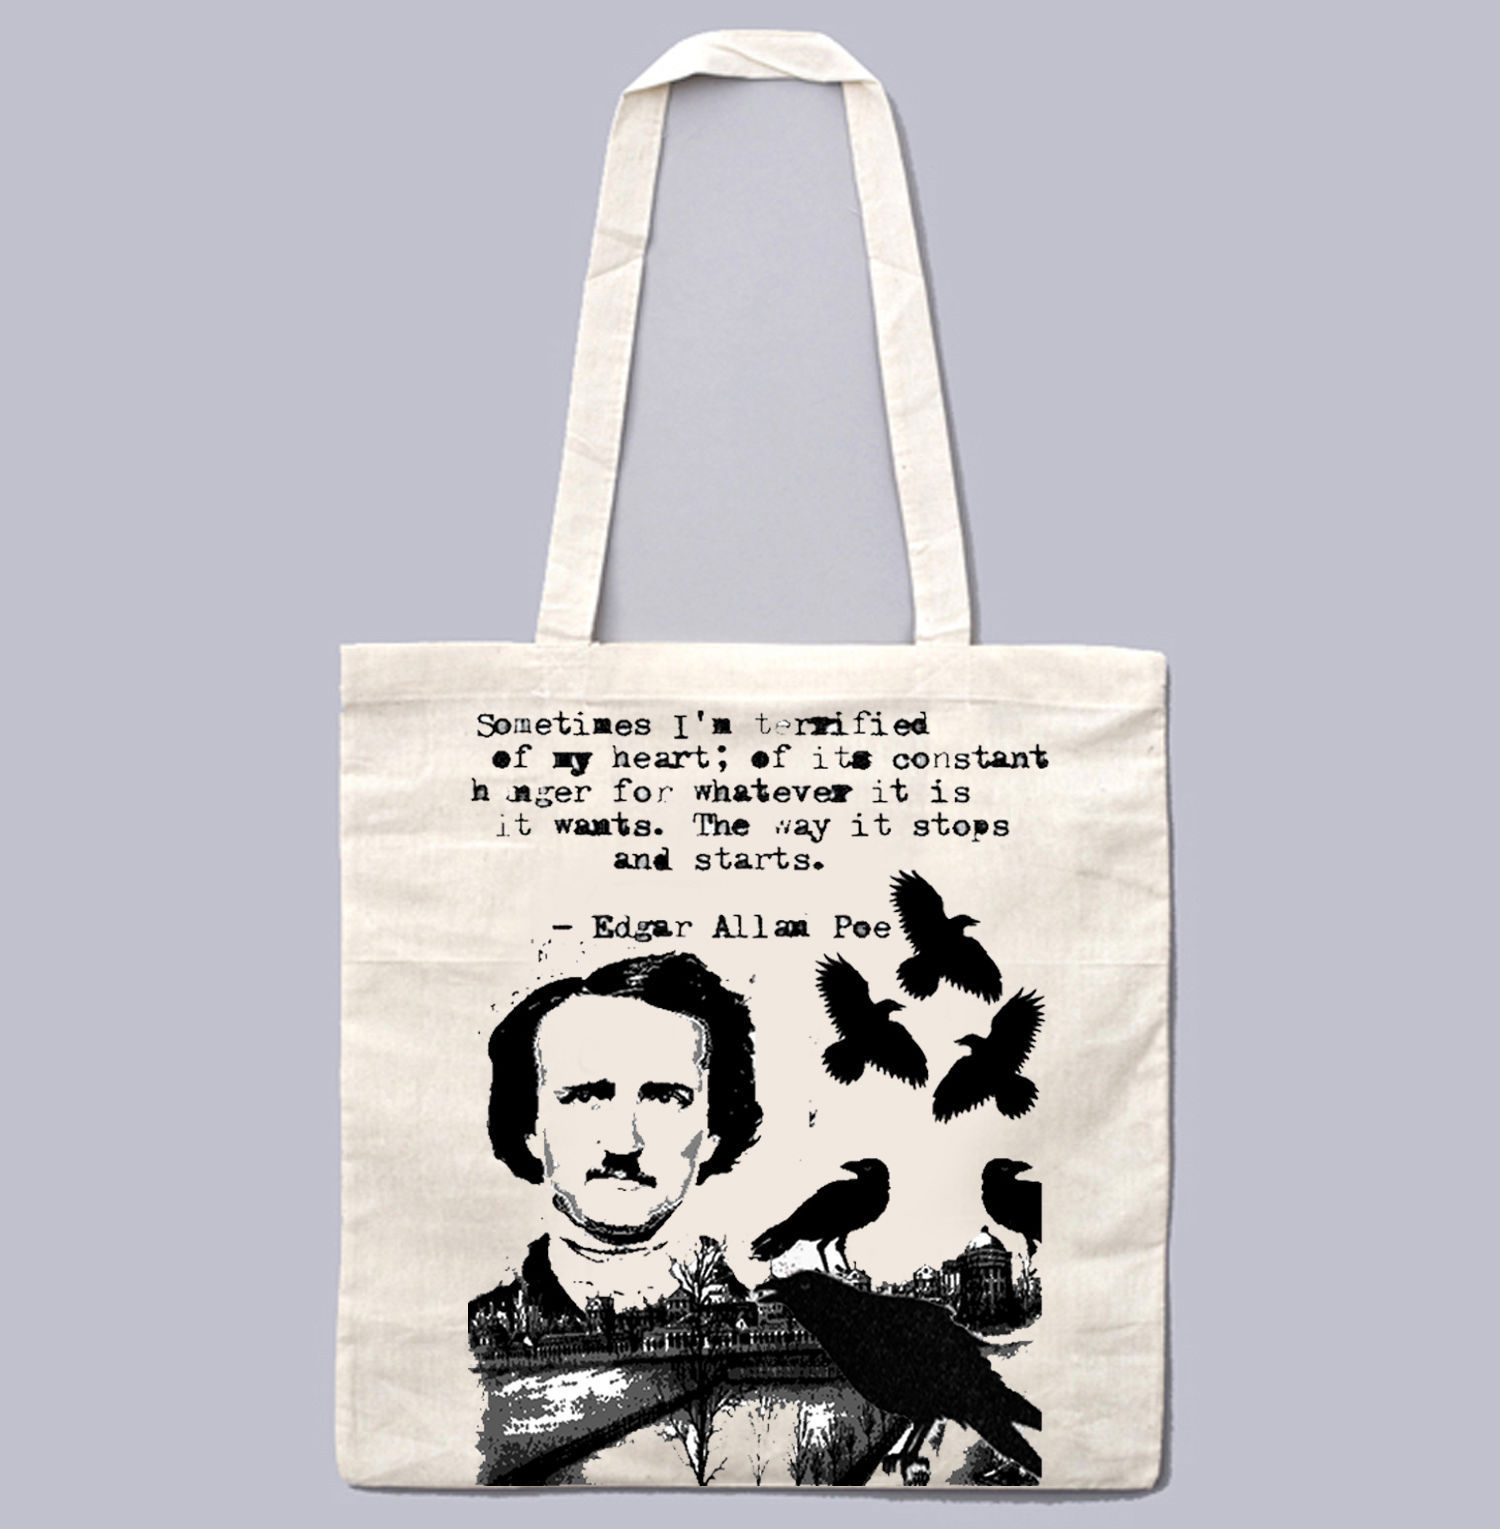 EDGAR ALAN POE SOMETIMES I AM ... - NEW AMAZING GRAPHIC WHITE HAND BAG/TOTE BAG